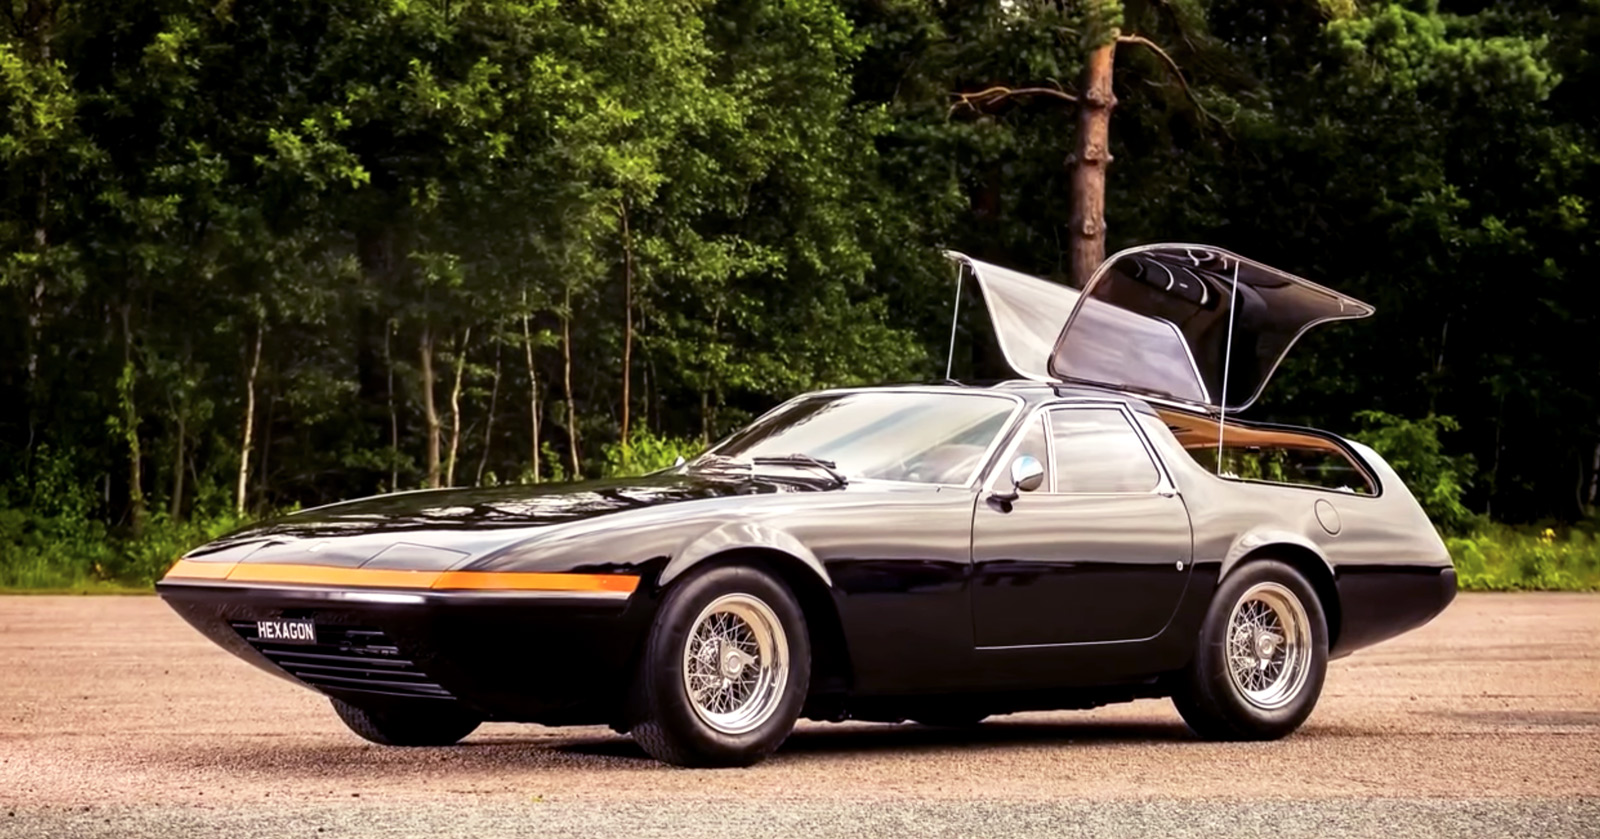 Ferrari 365 GTB4 Daytona Shooting Brake